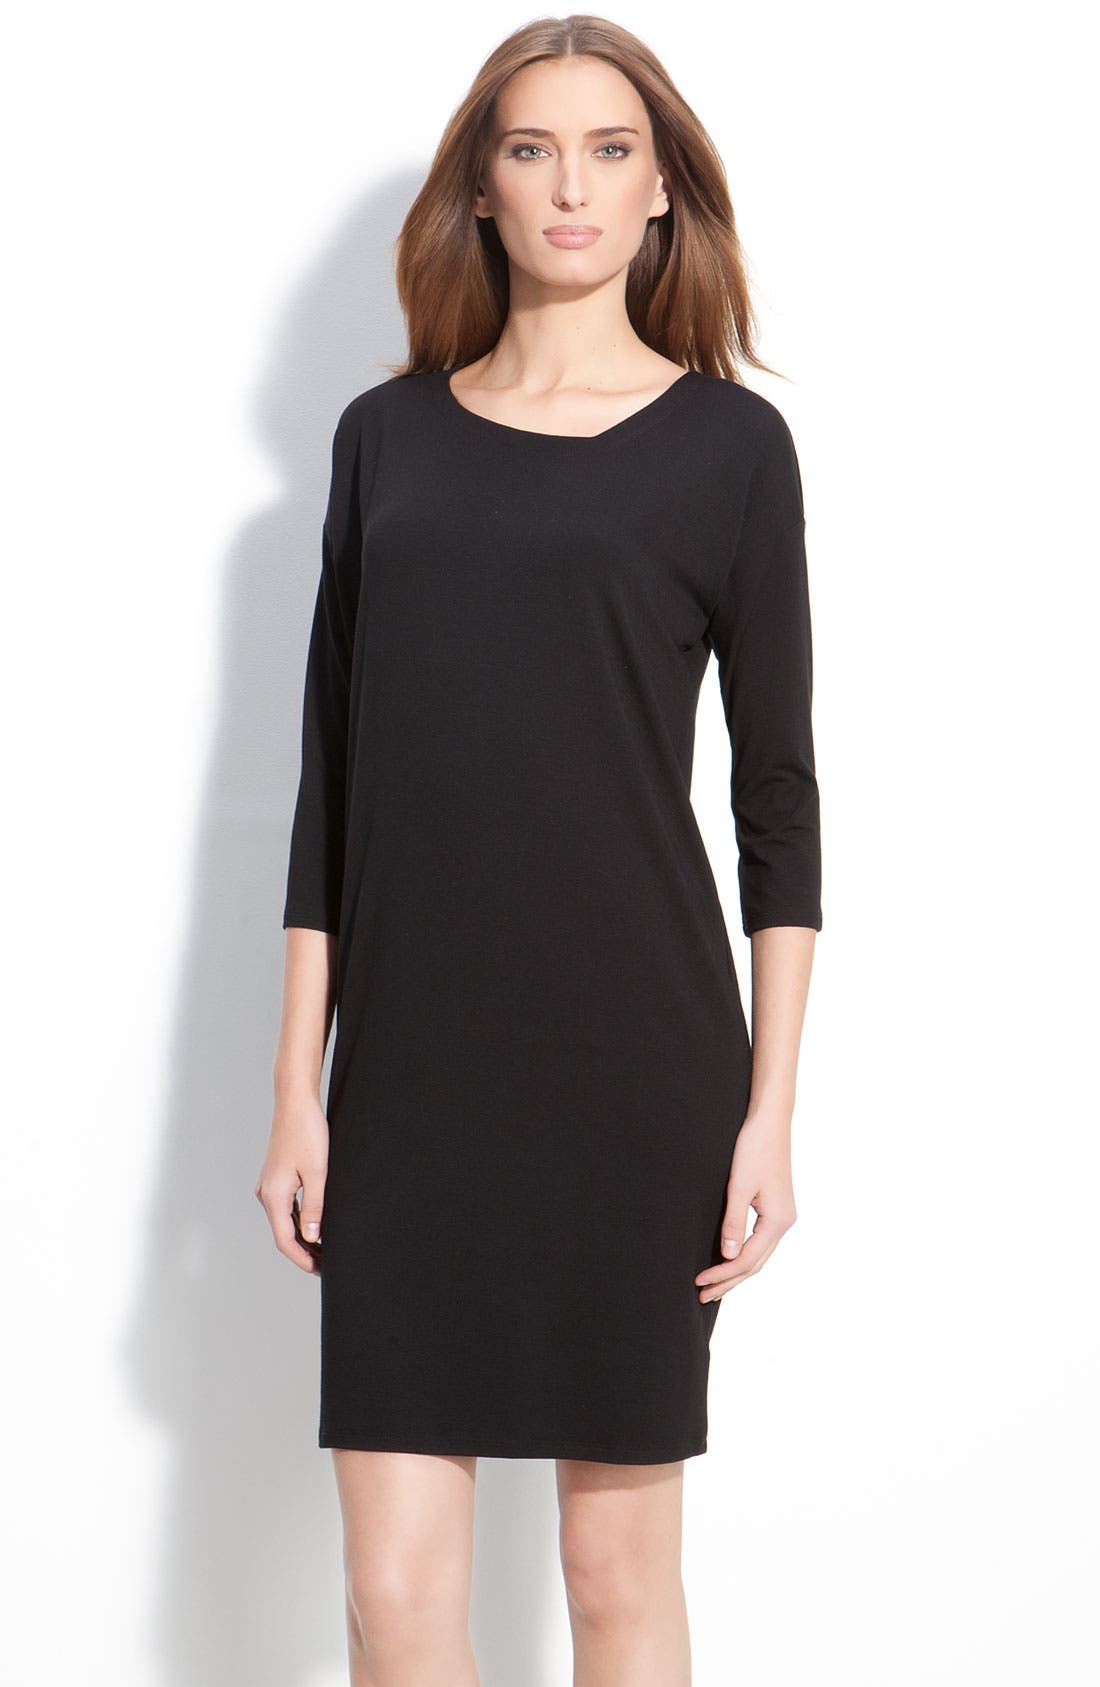 Alternate Image 1 Selected - Eileen Fisher Asymmetrical Neck Dress (Petite)